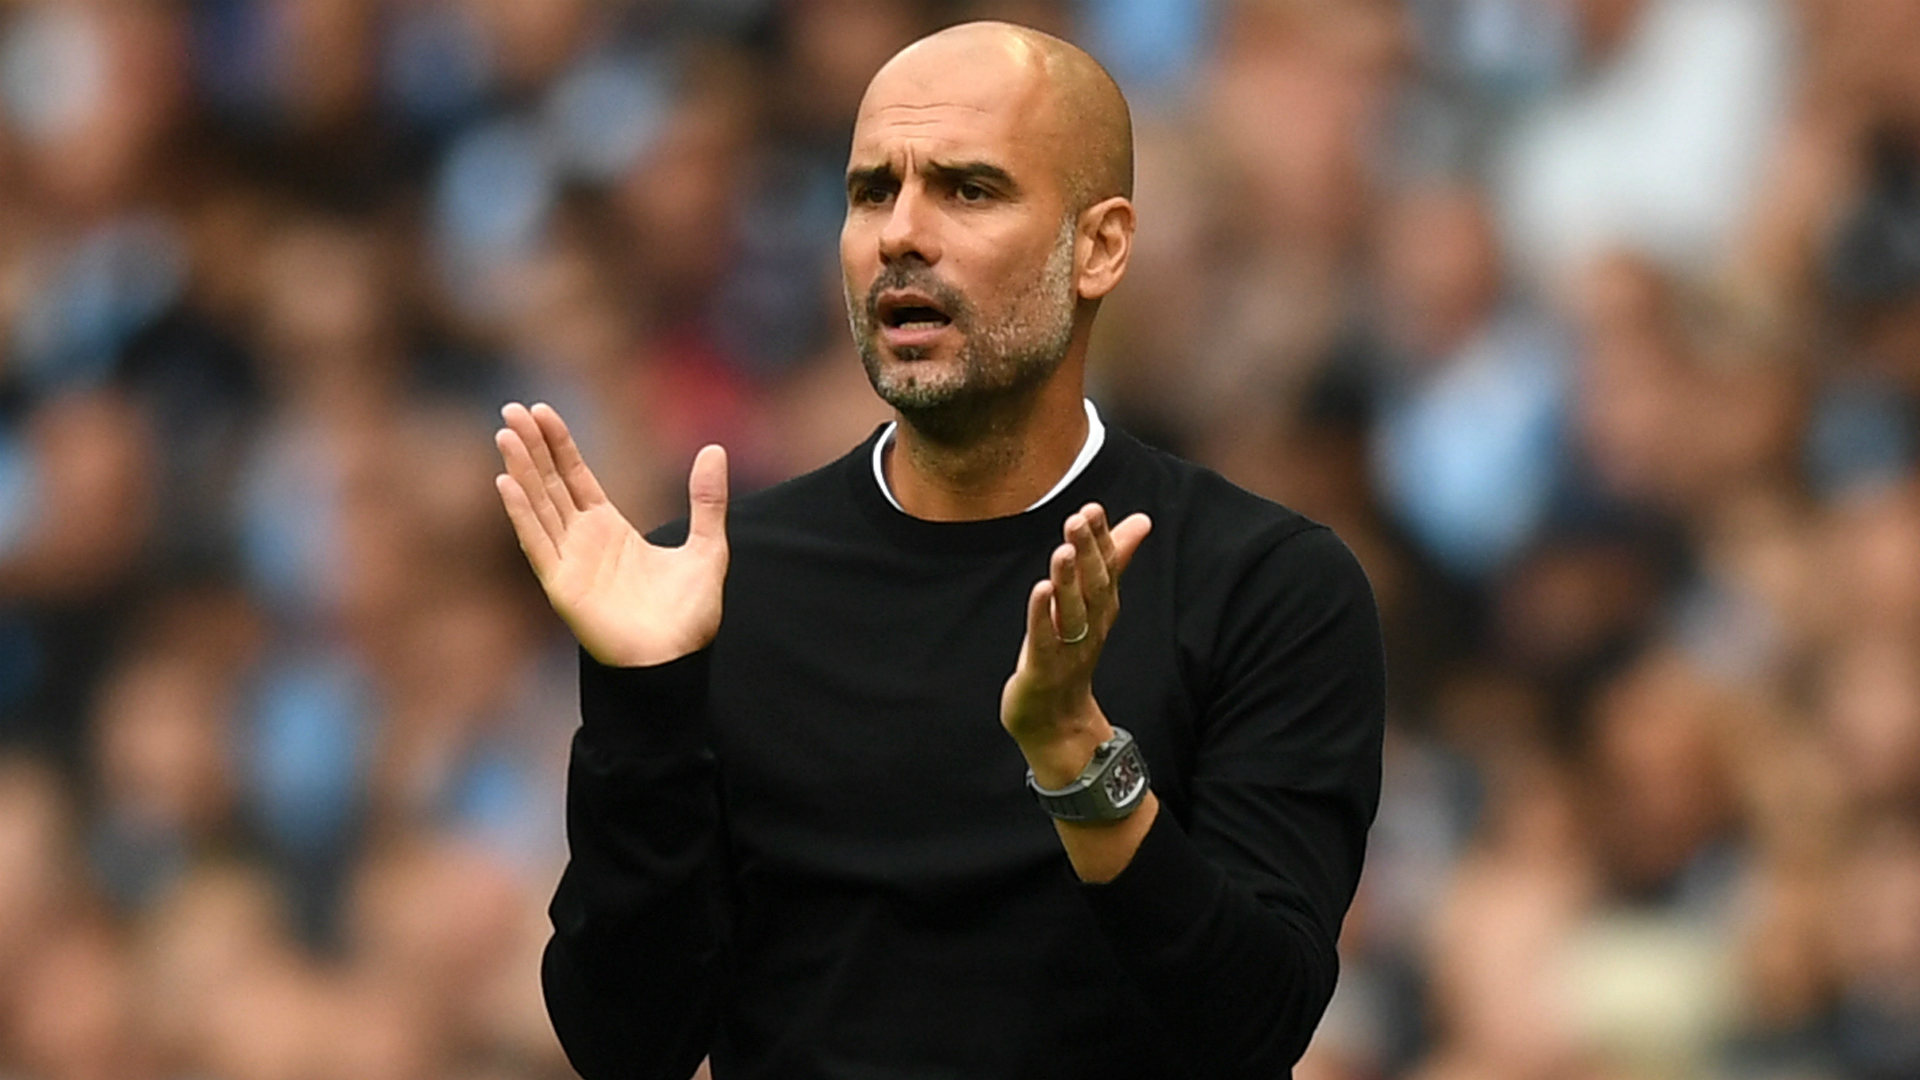 Guardiola: I Want To Coach An International Team